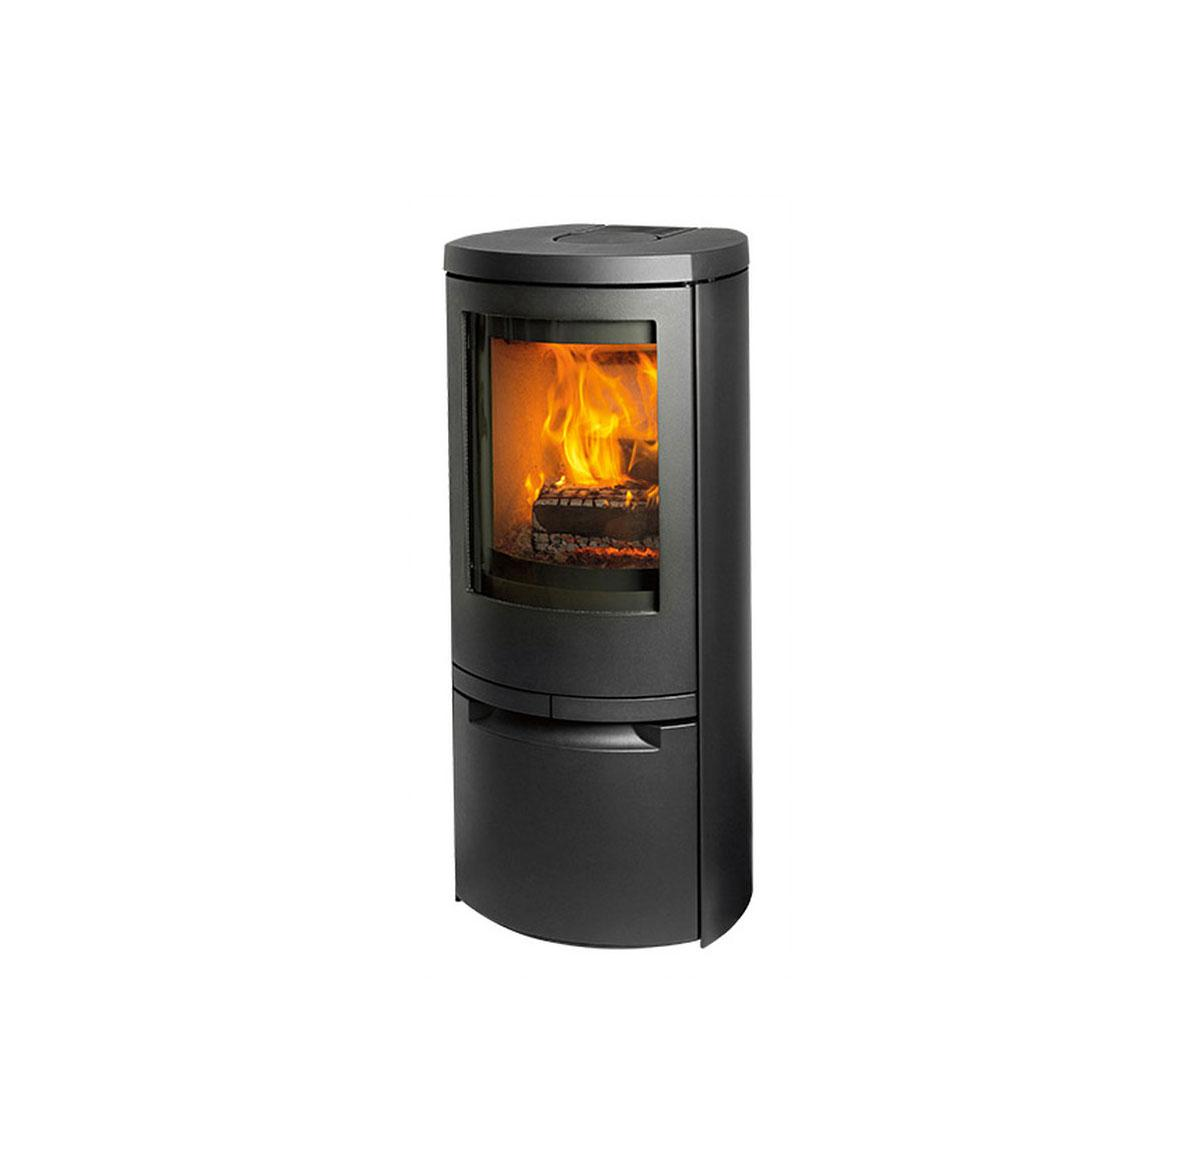 Jydepejsen Cosmo Wood Burning Stove For Sale In South Africa